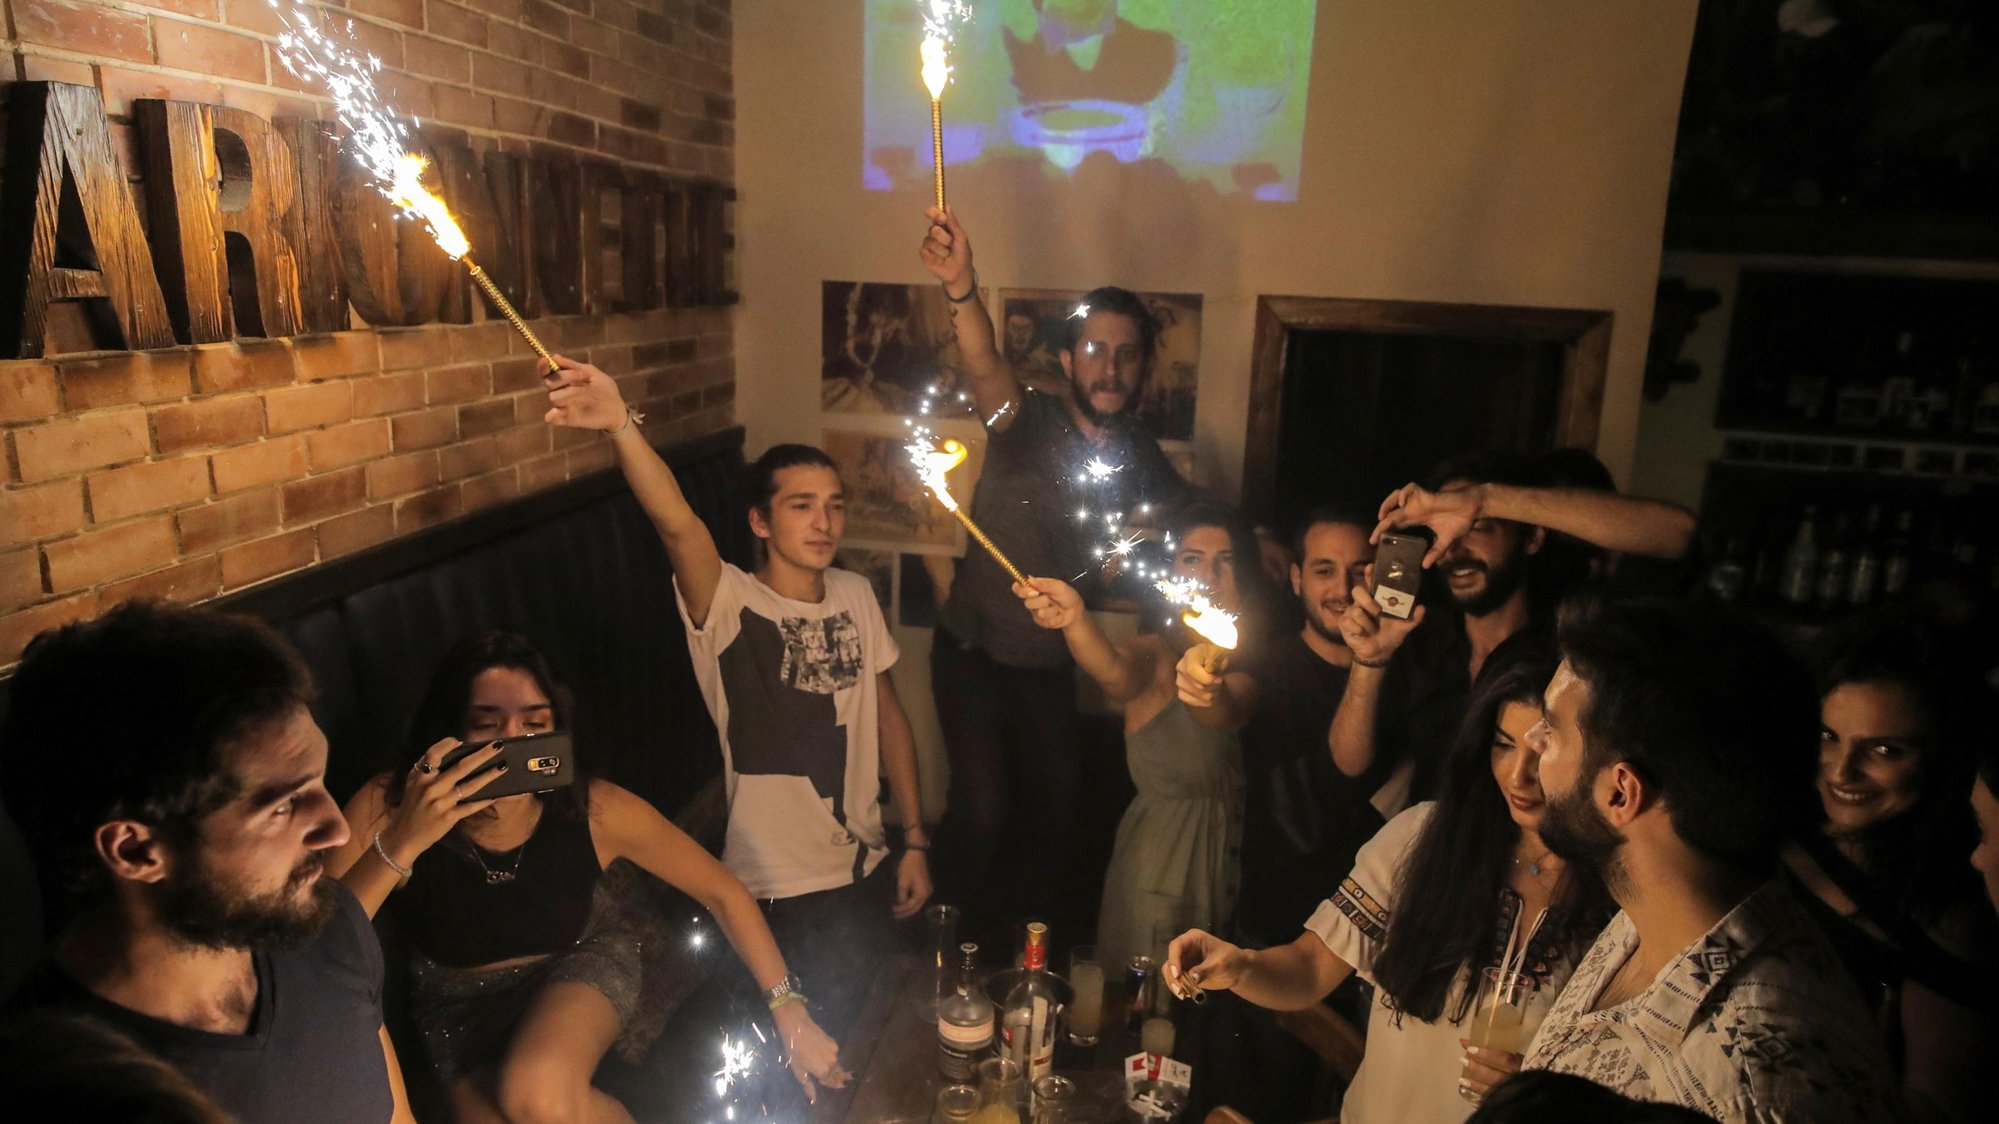 people gathered in a bar lighting sparklers and drinking